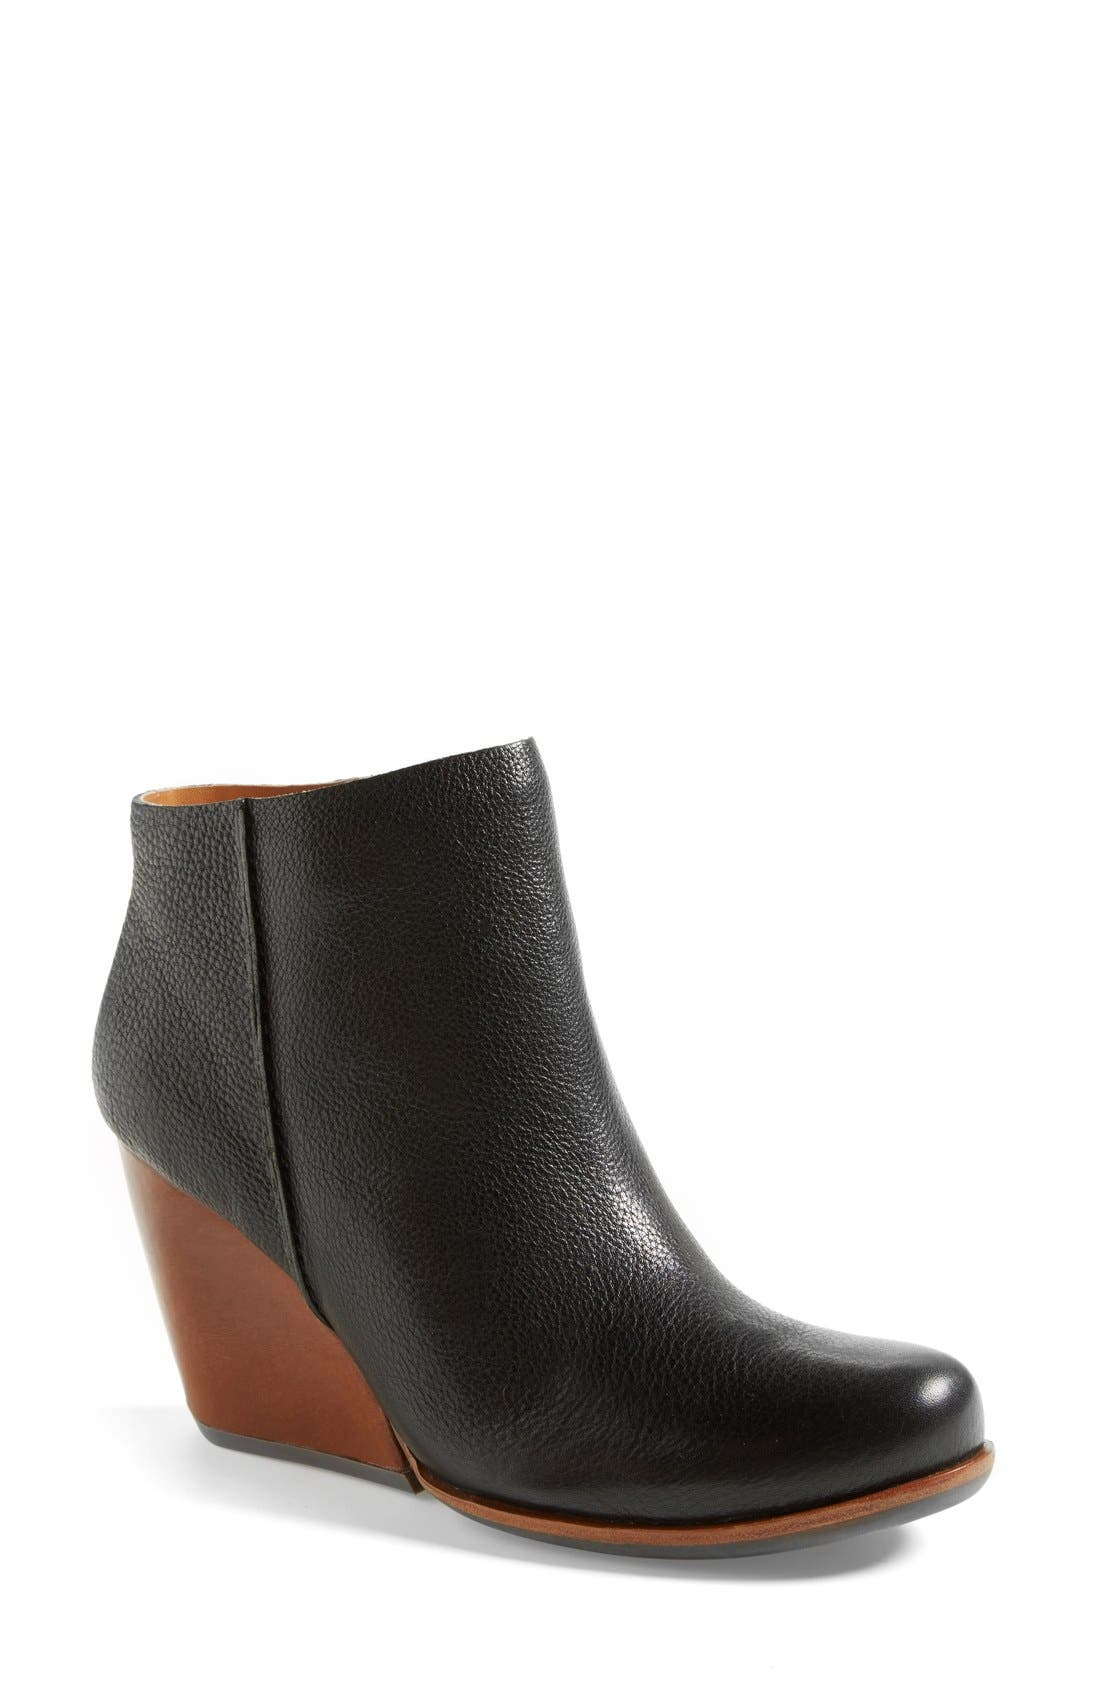 'Natalya' Burnished Leather Demi Wedge Boot,                         Main,                         color, 001